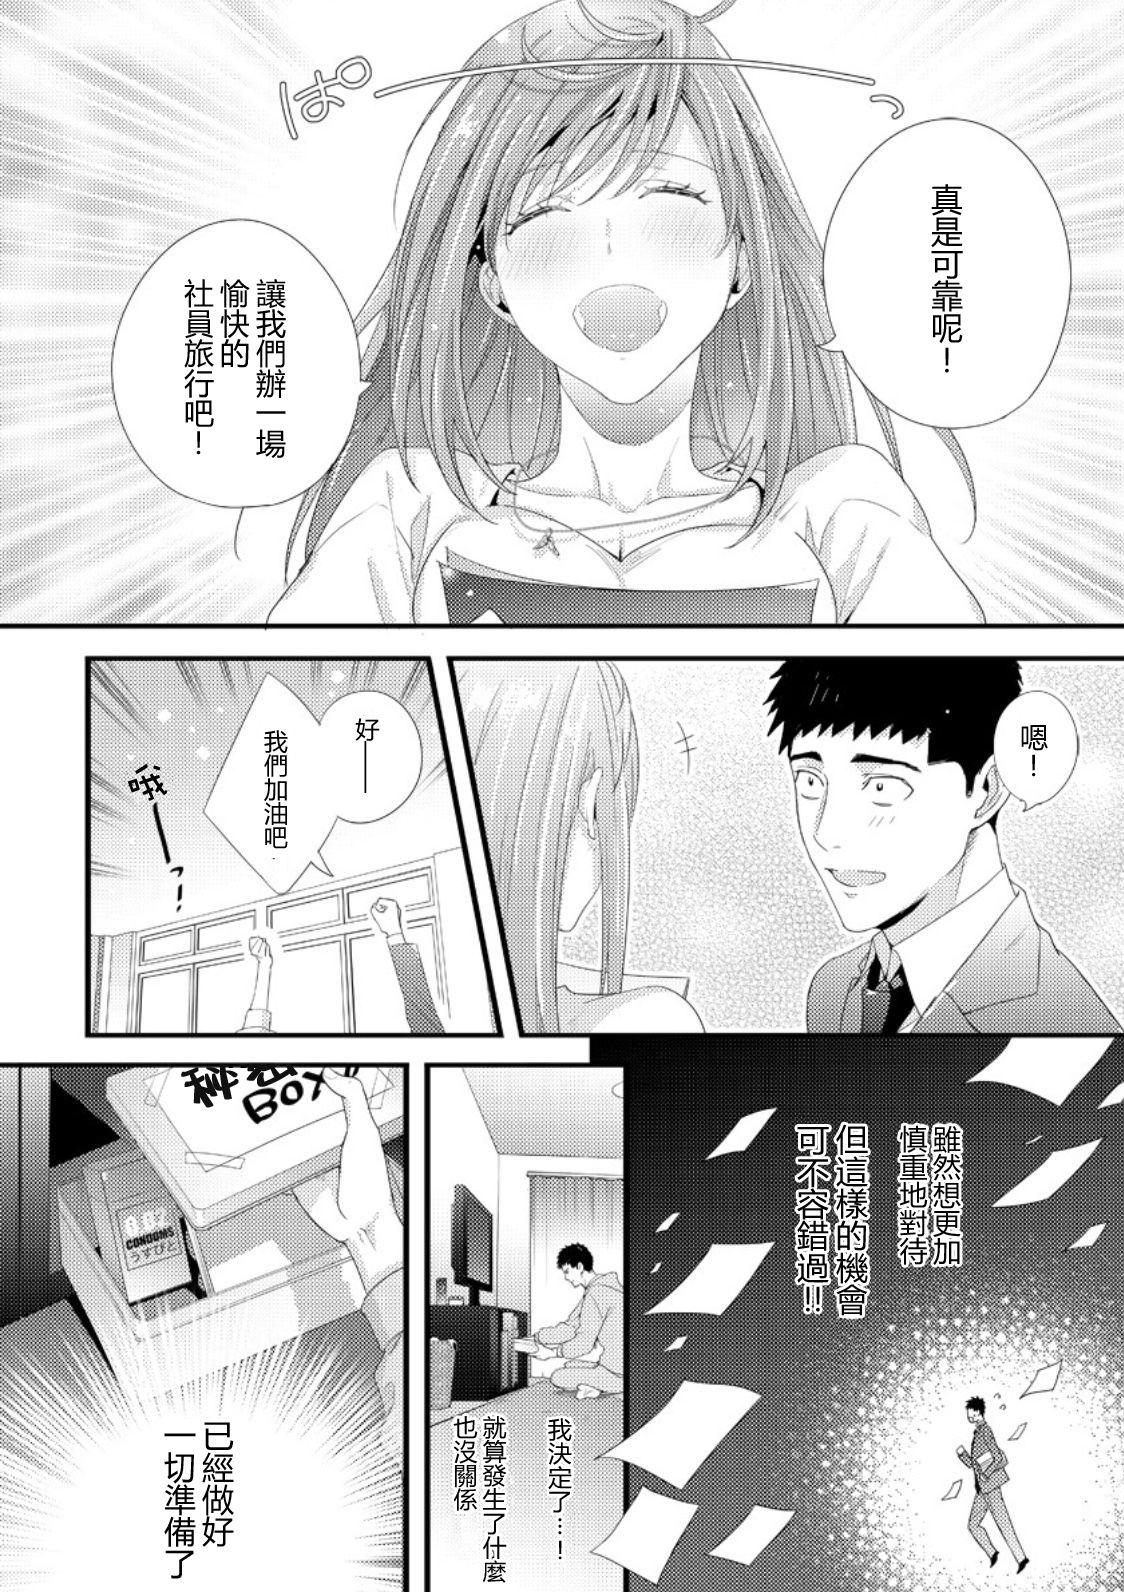 Please Let Me Hold You Futaba-San! Ch.1 7